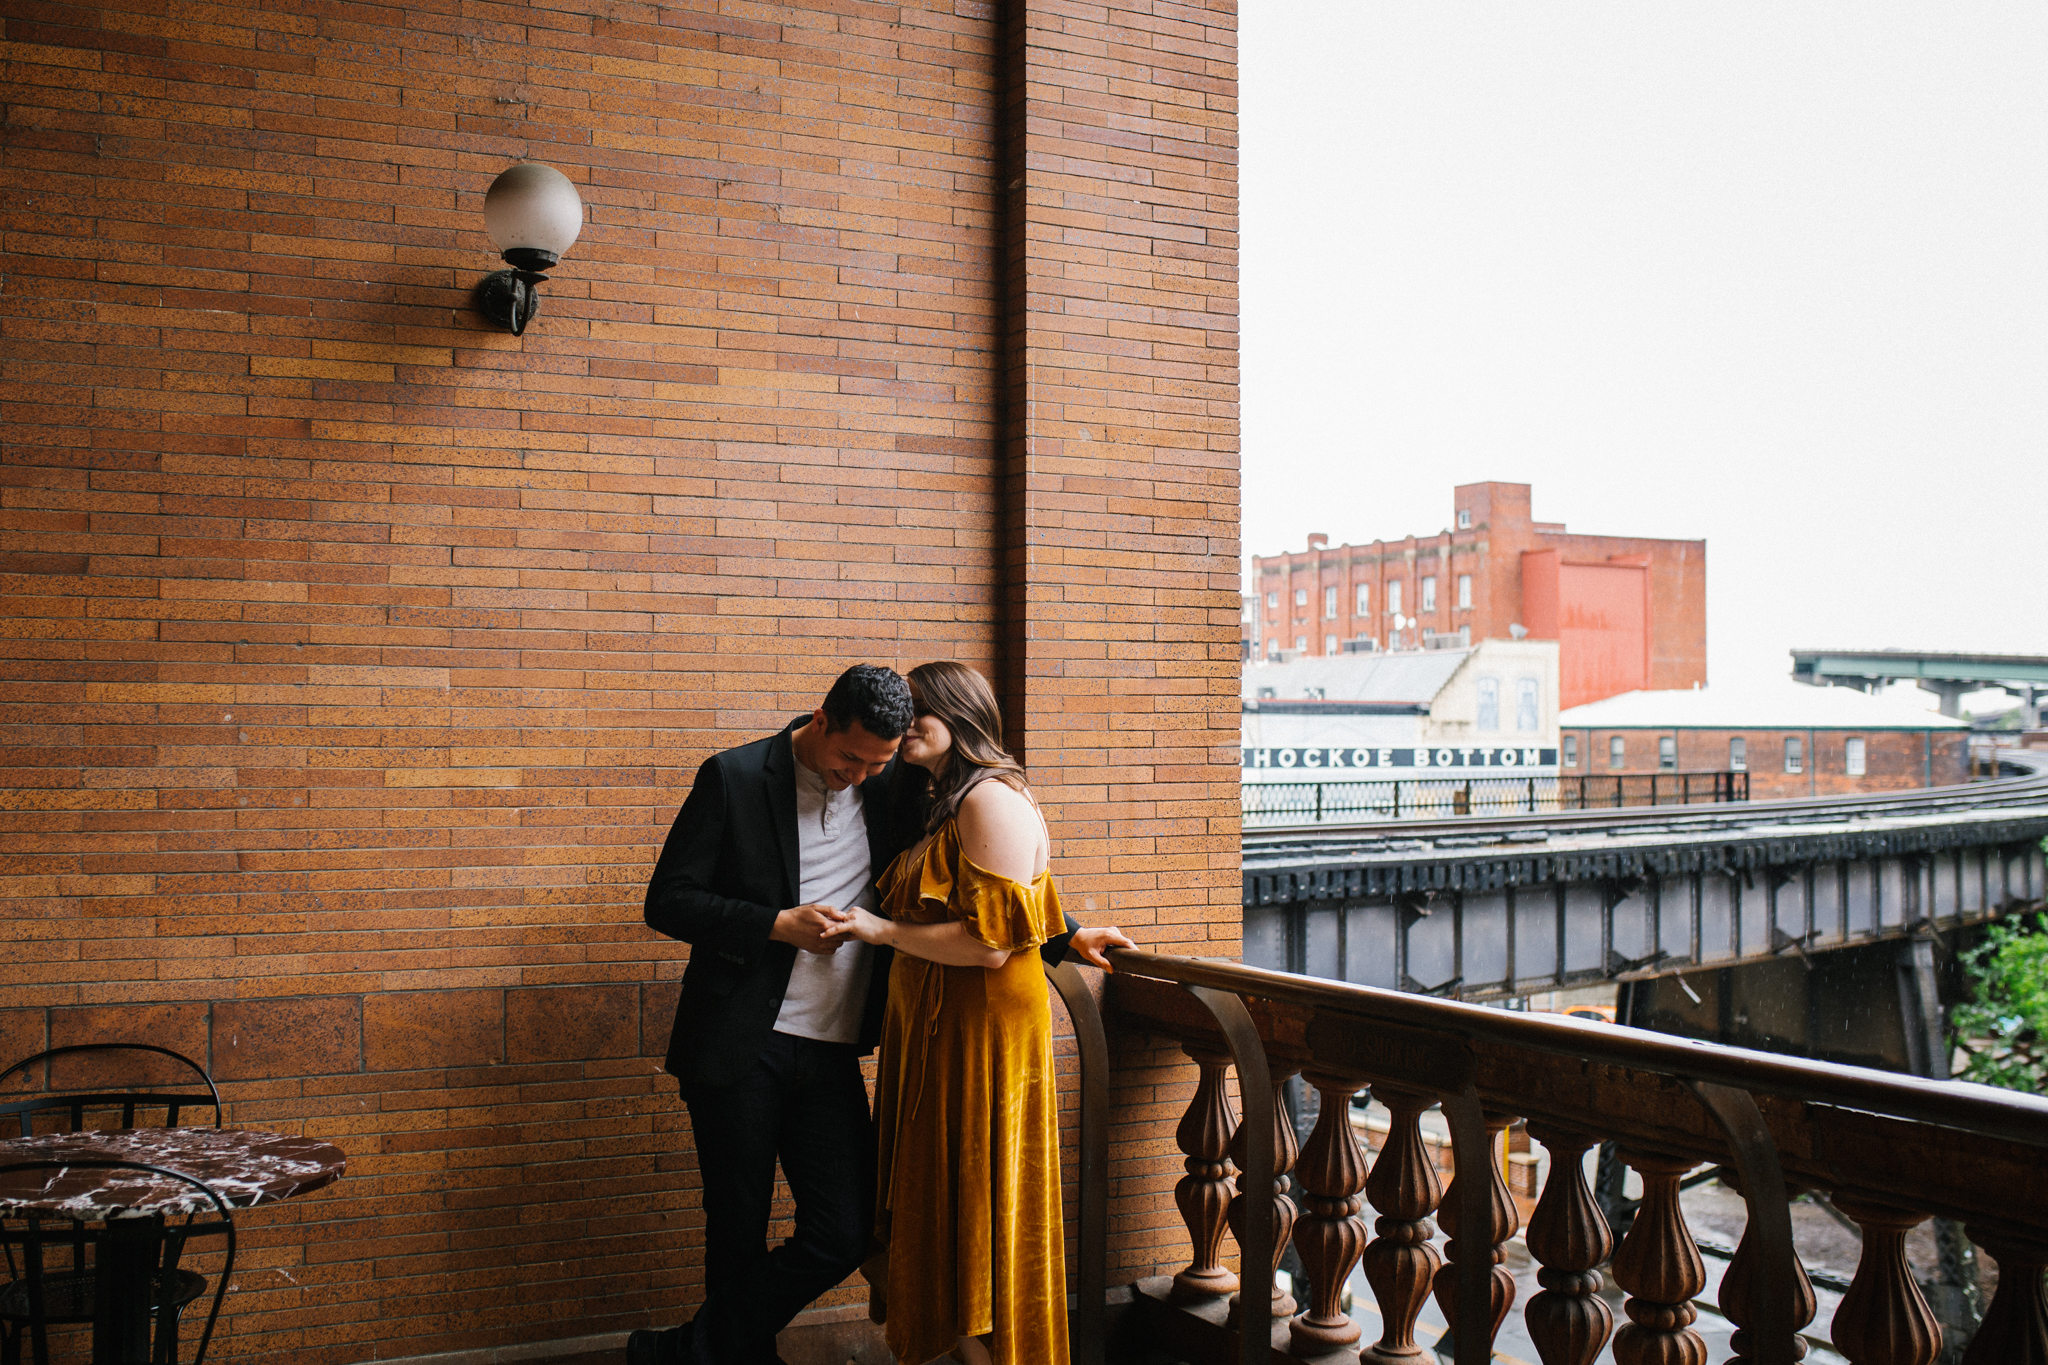 rachel_alex_richmond_engagement_session_mainstreetstation_rebeccaburtphotography-19.jpg